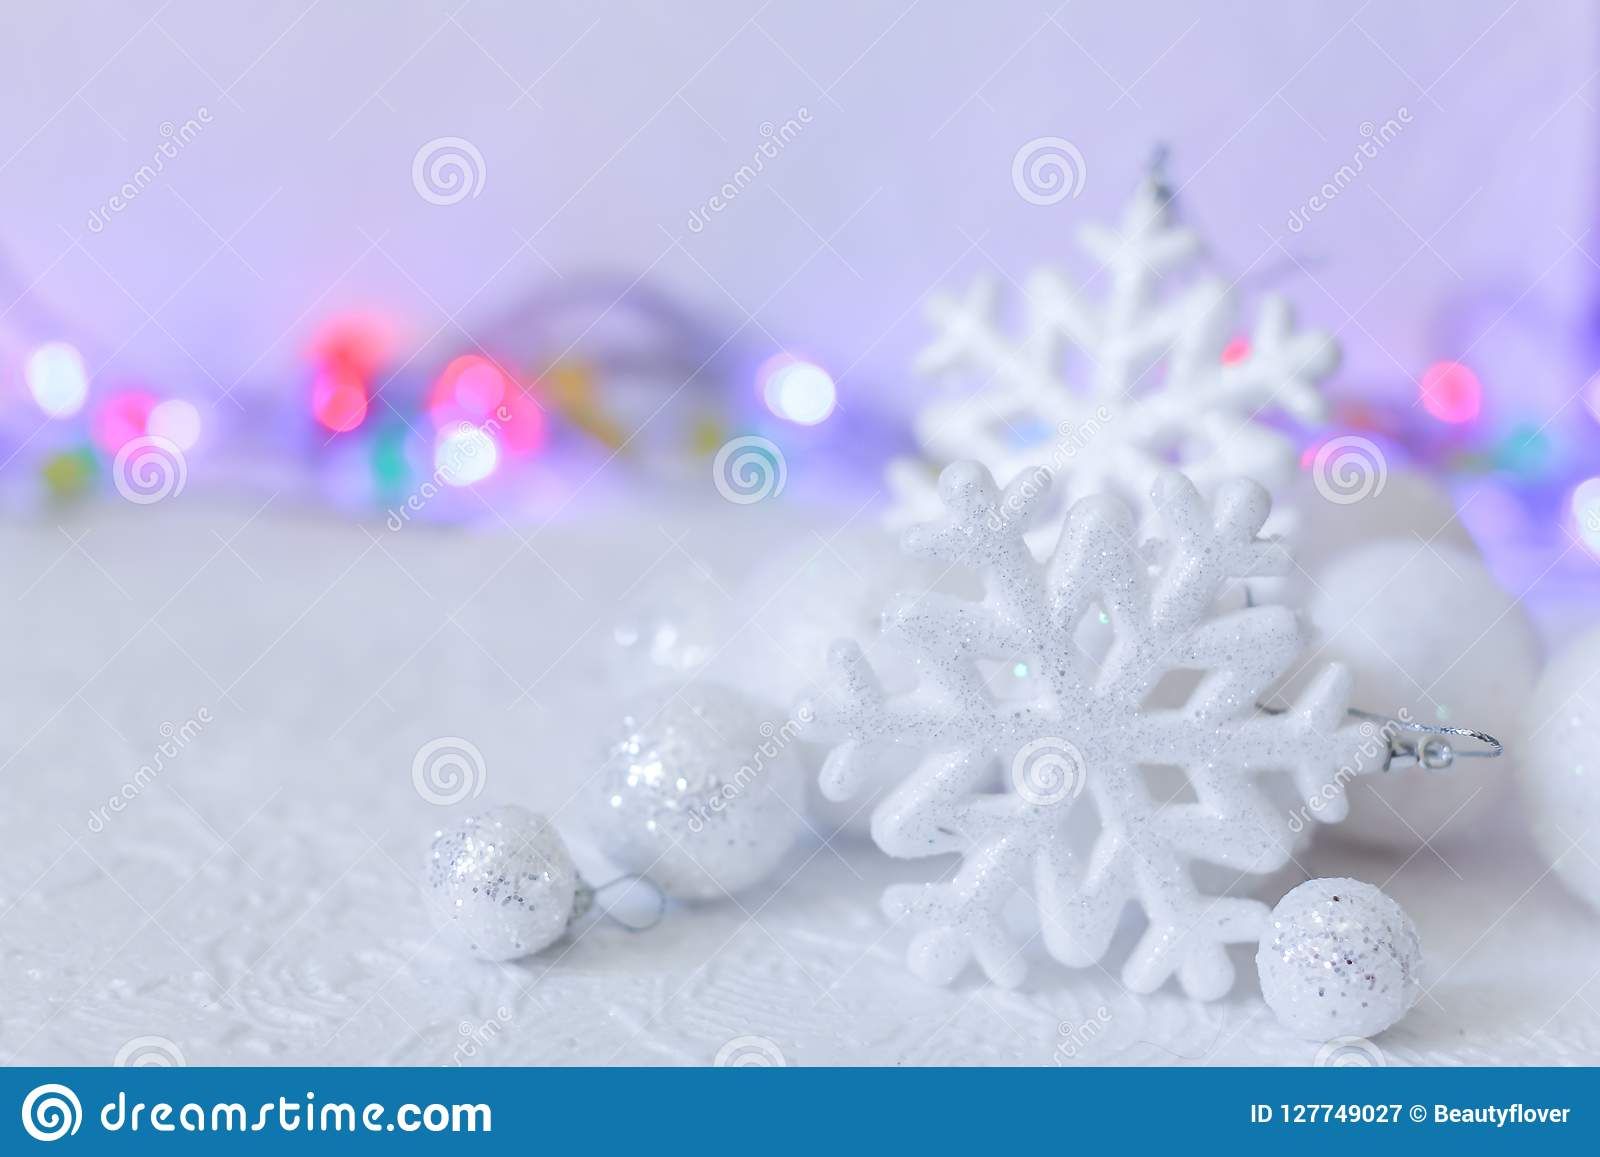 New year or Christmas decorations in silver and white colors with balls, snowflakes and garland bokeh